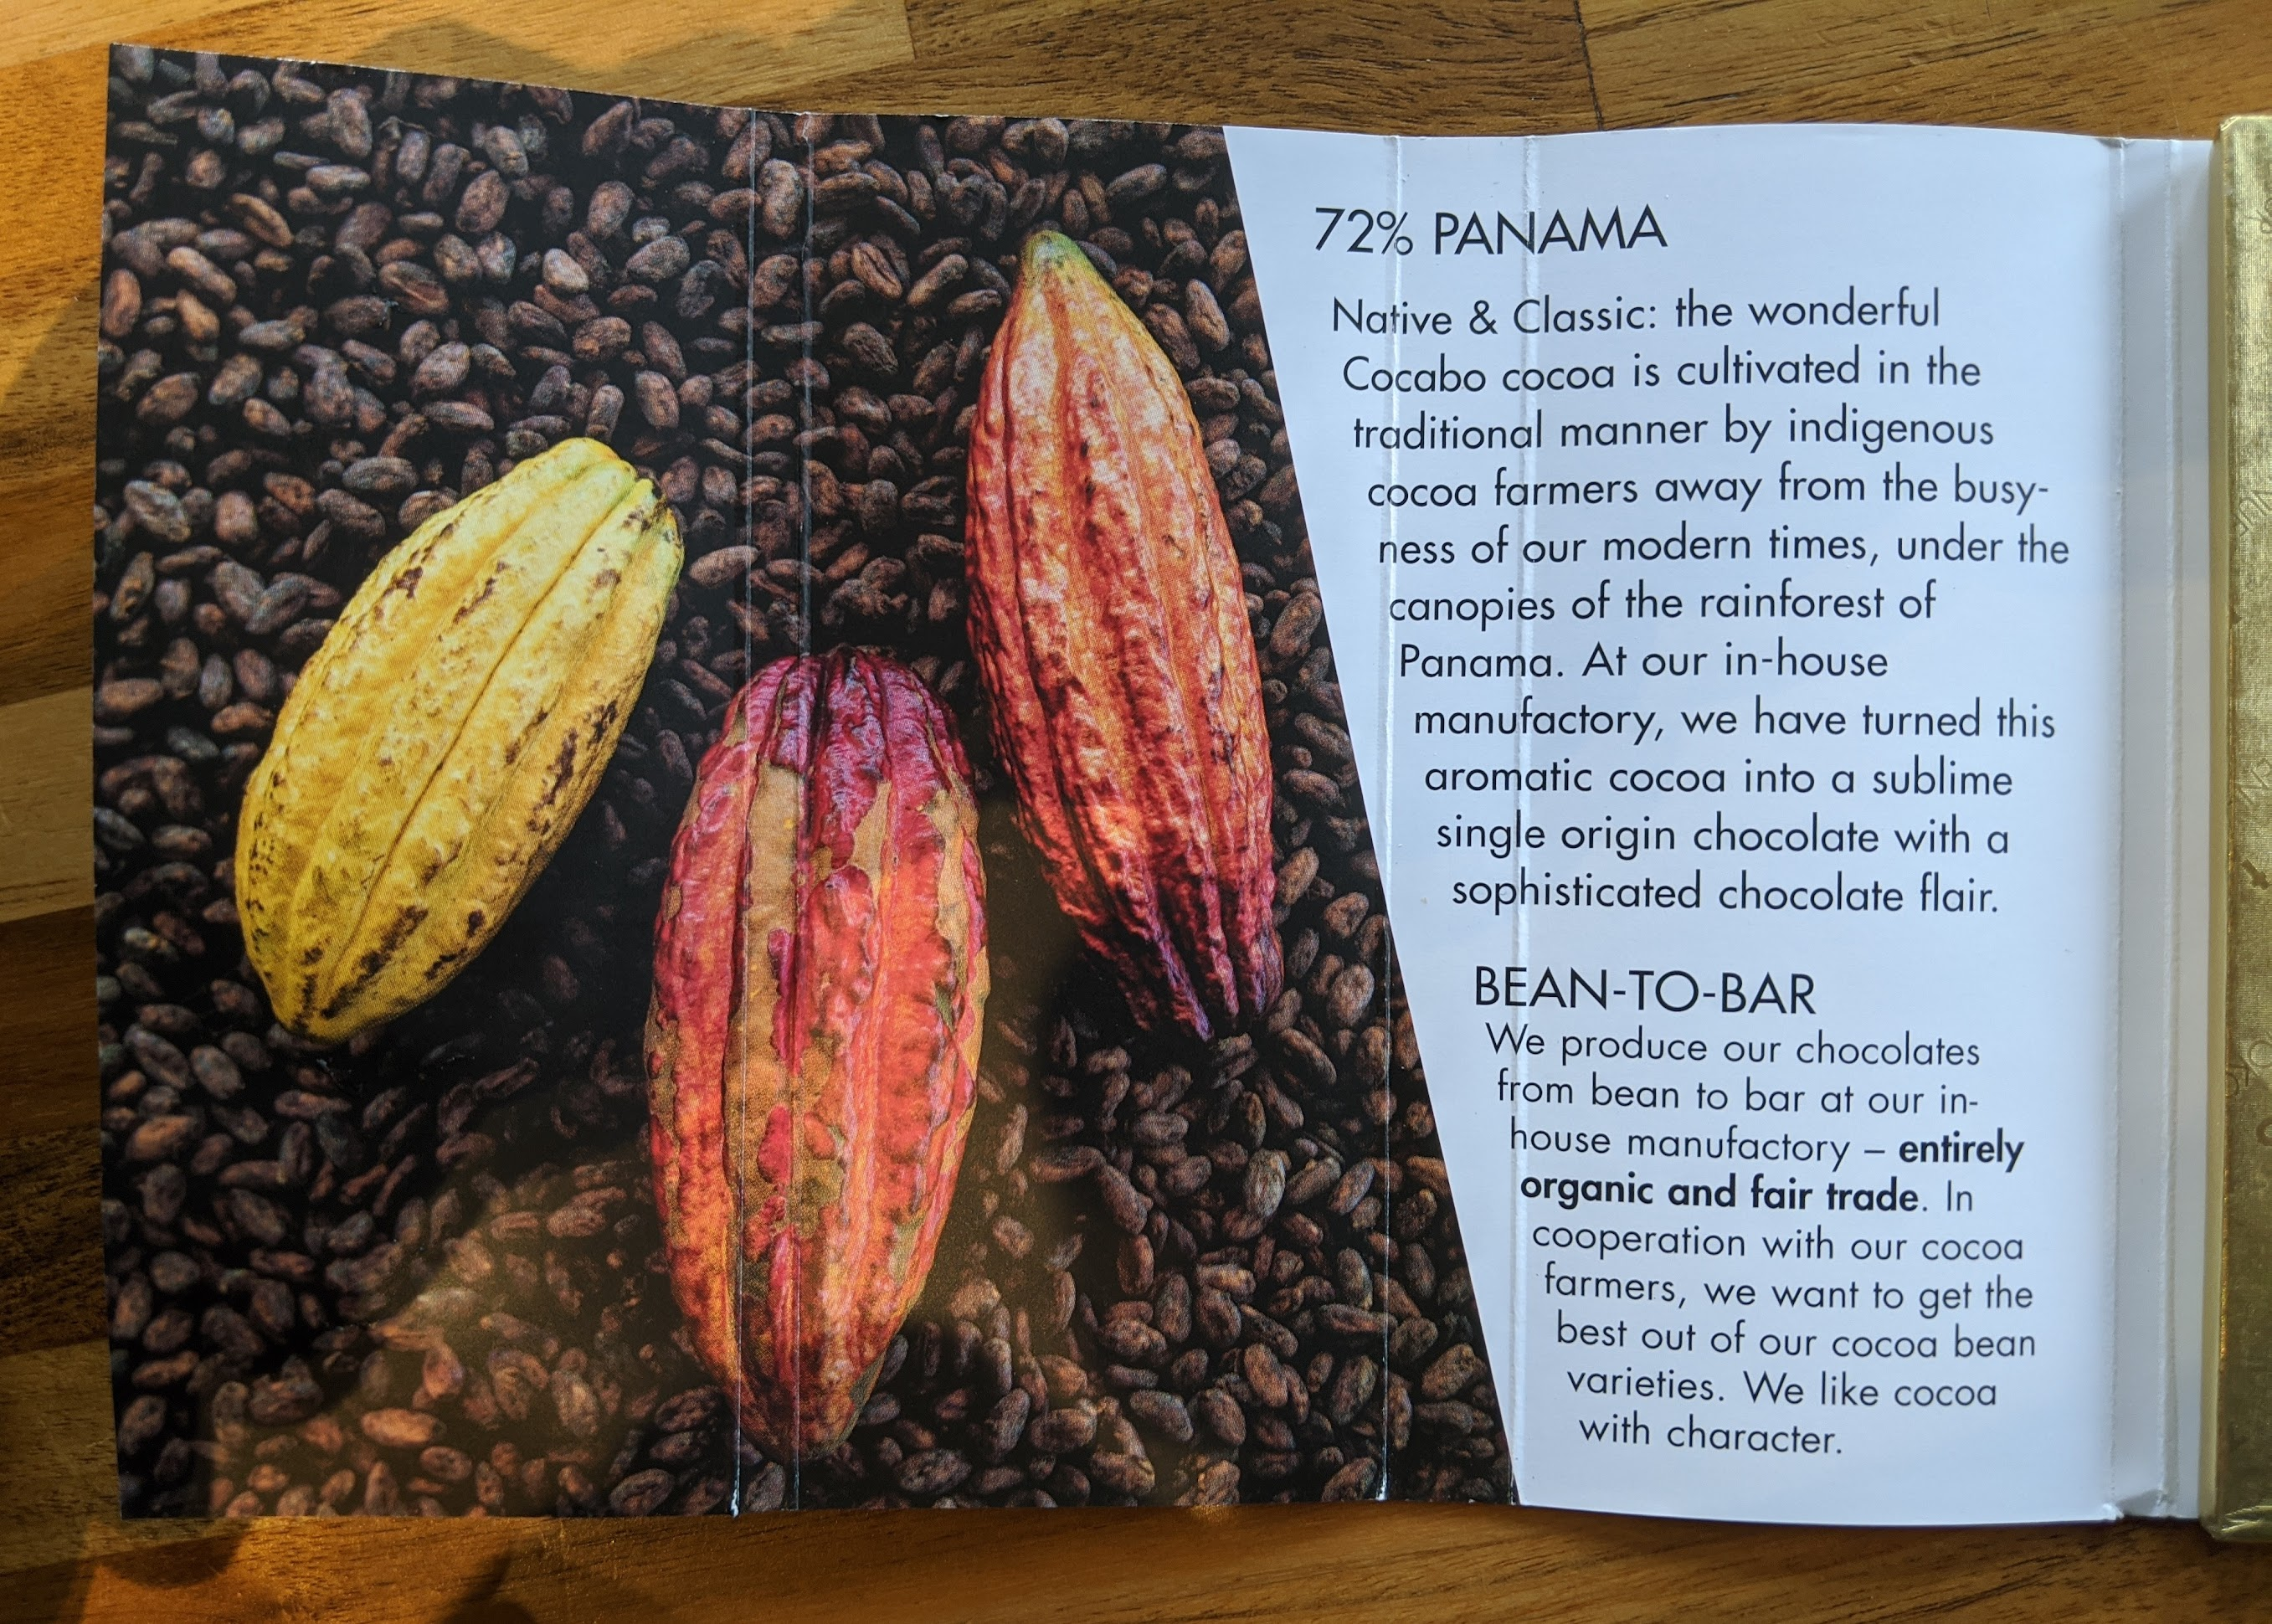 72% zotter panama bar